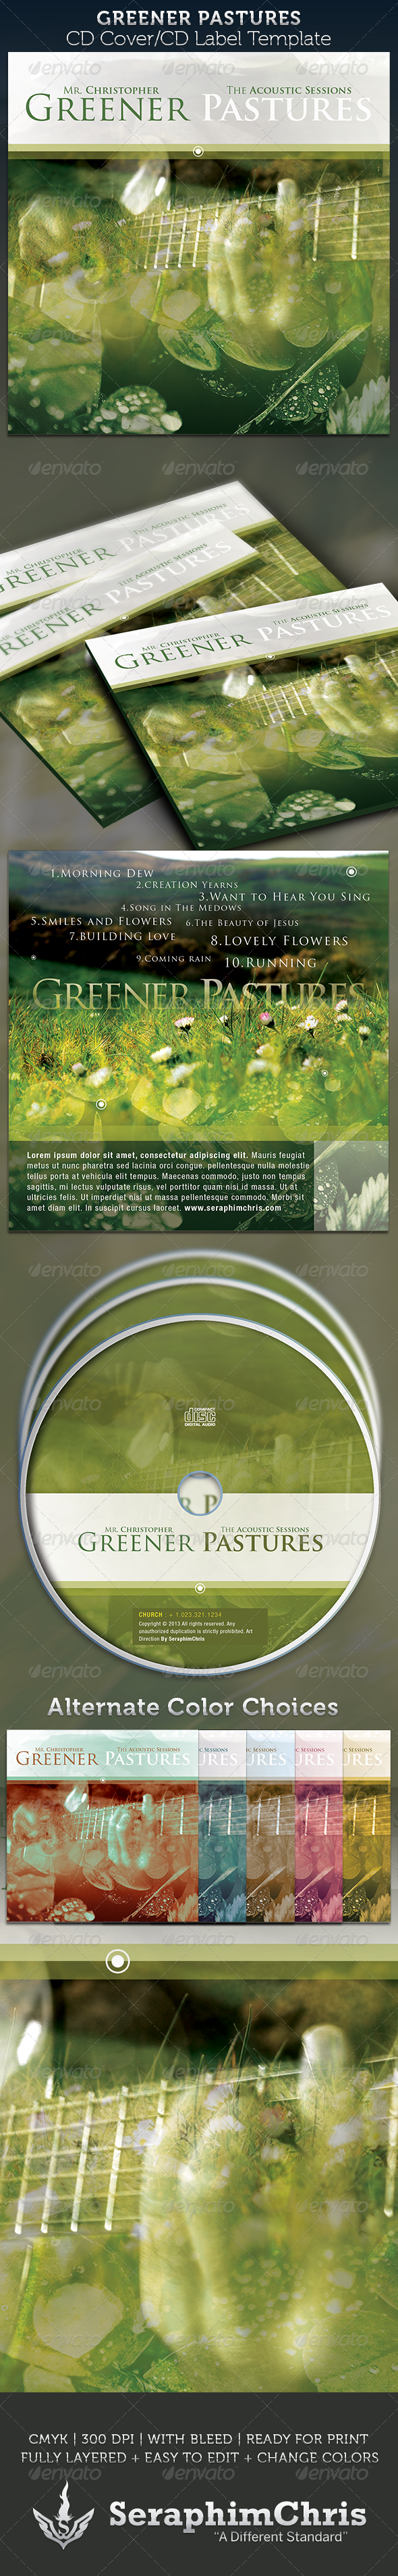 GraphicRiver Greener Pastures CD Cover Artwork Template 4045890